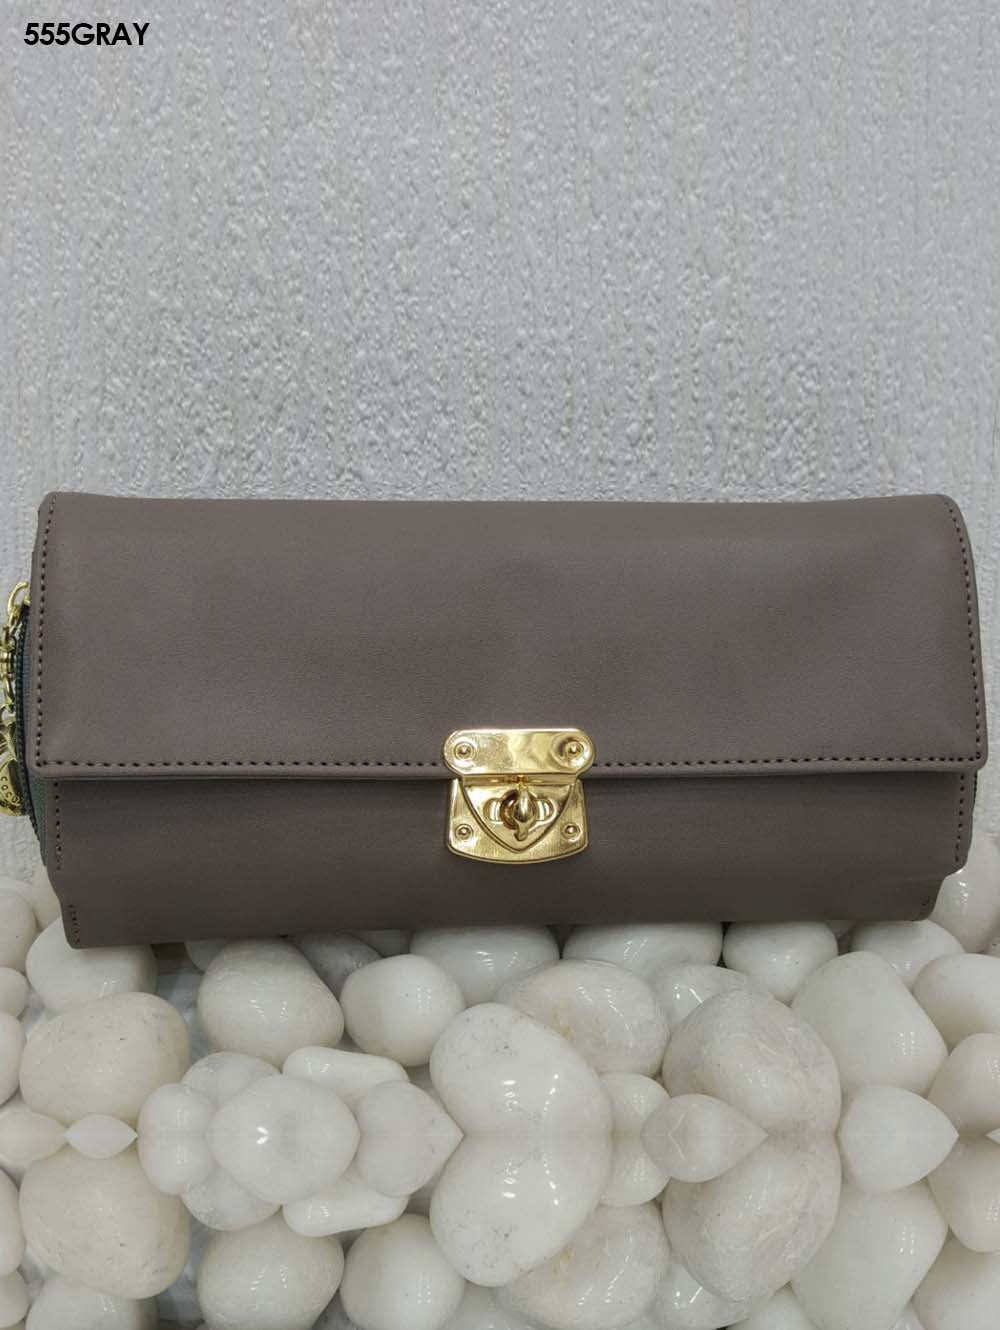 Grey Stylish Women Clutch